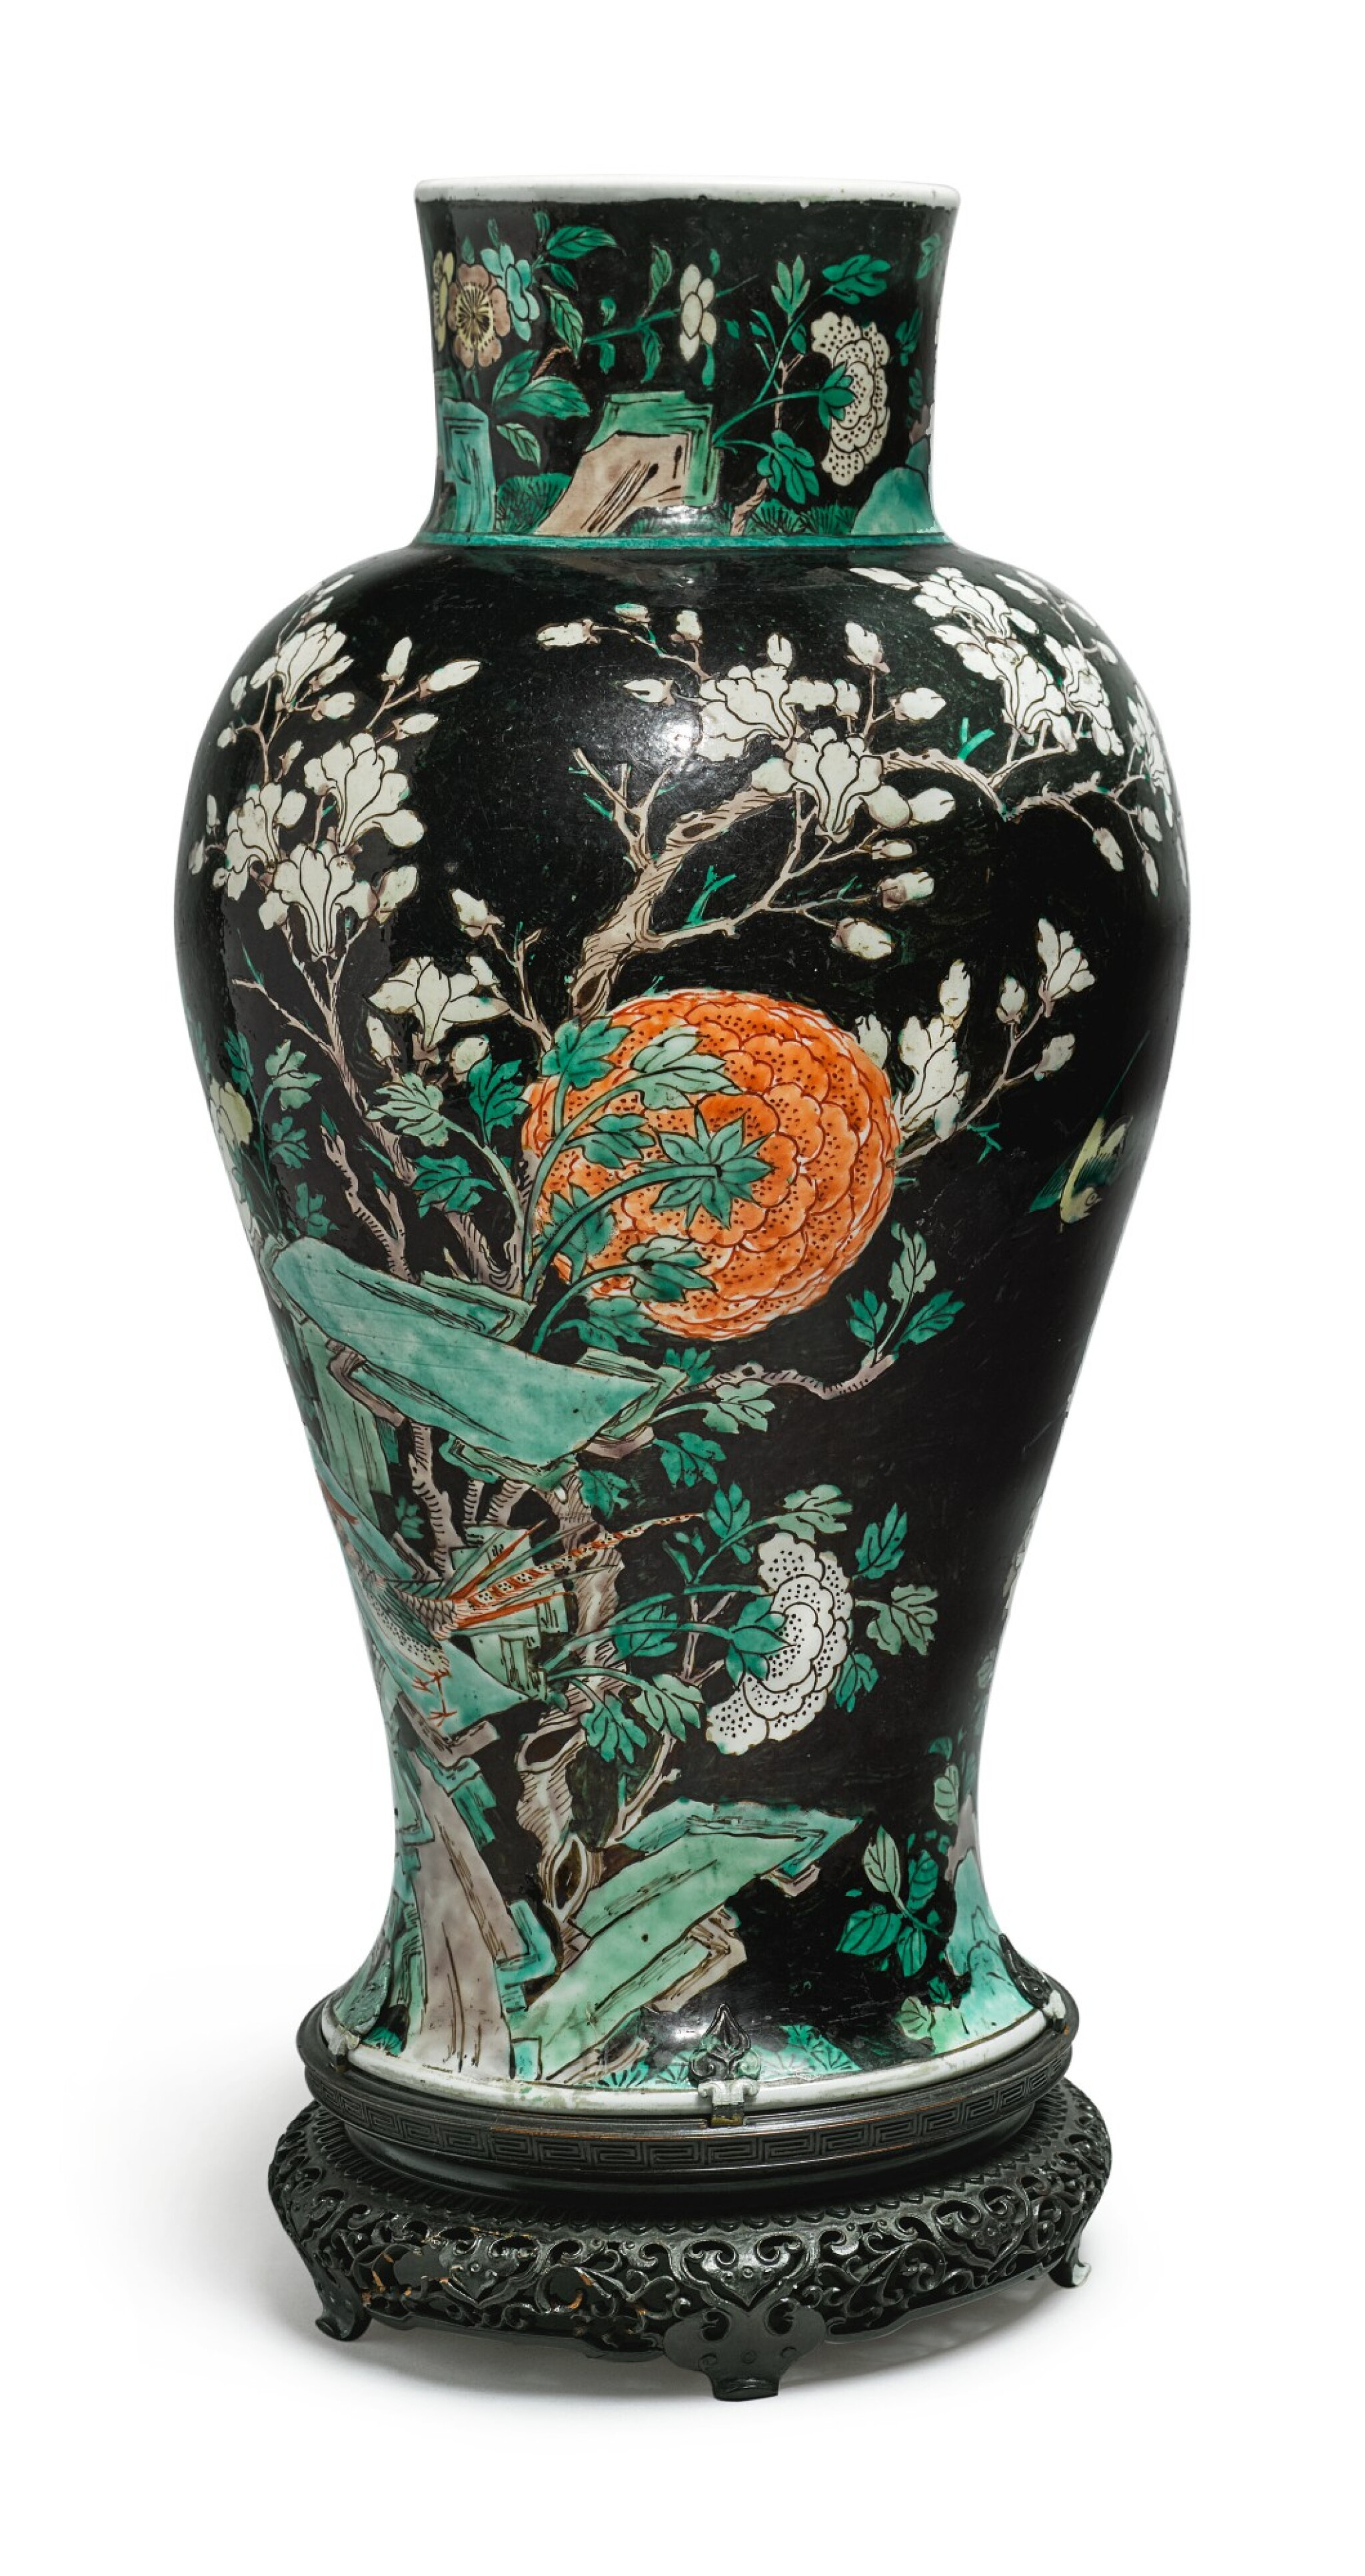 View full screen - View 1 of Lot 1038. A FAMILLE-NOIRE 'BIRD AND FLOWER' BALUSTER JAR, QING DYNASTY, 19TH CENTURY.